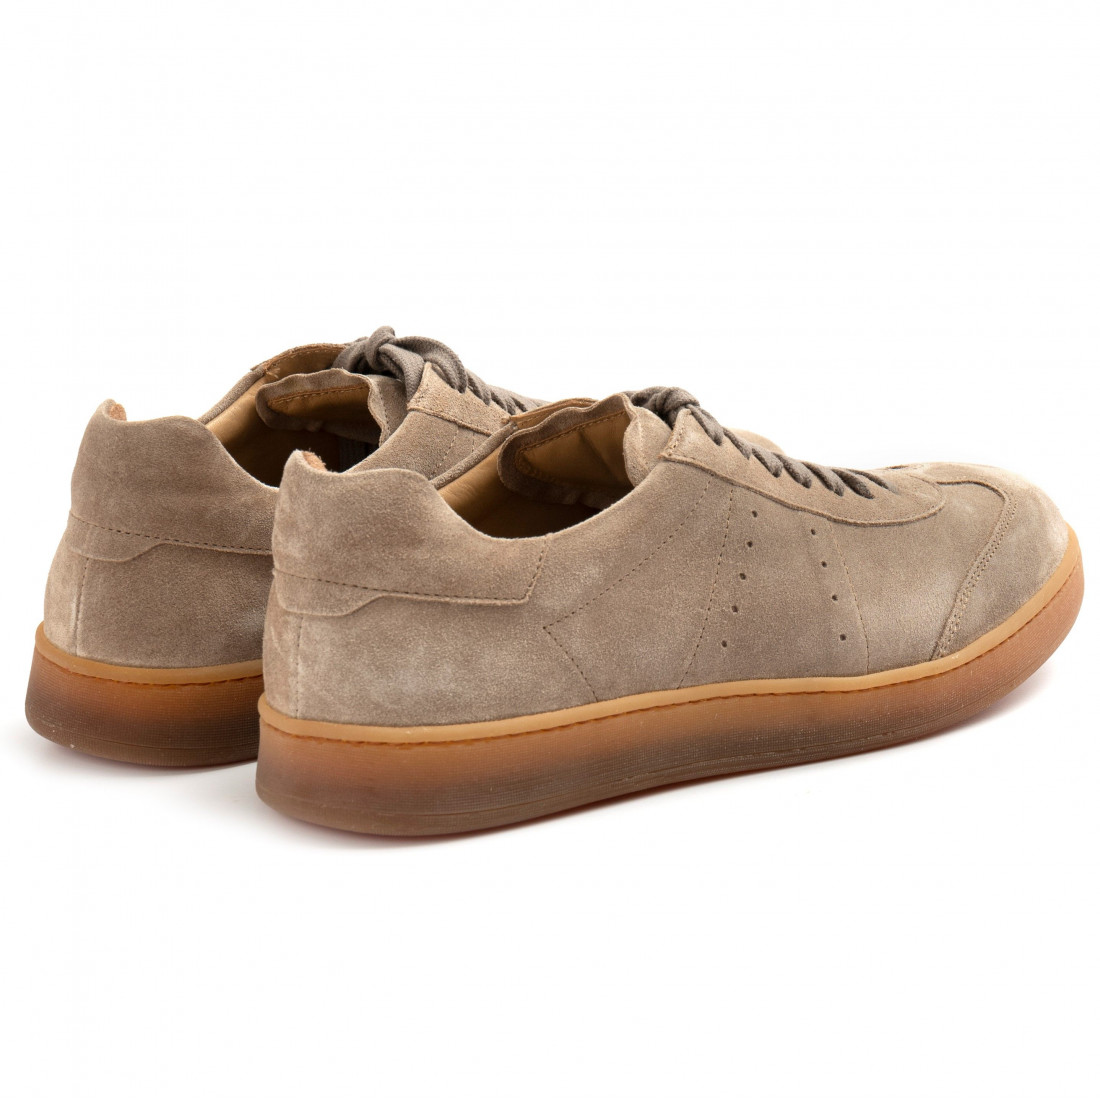 sneakers uomo rossano bisconti 463 02softy antilup 8435